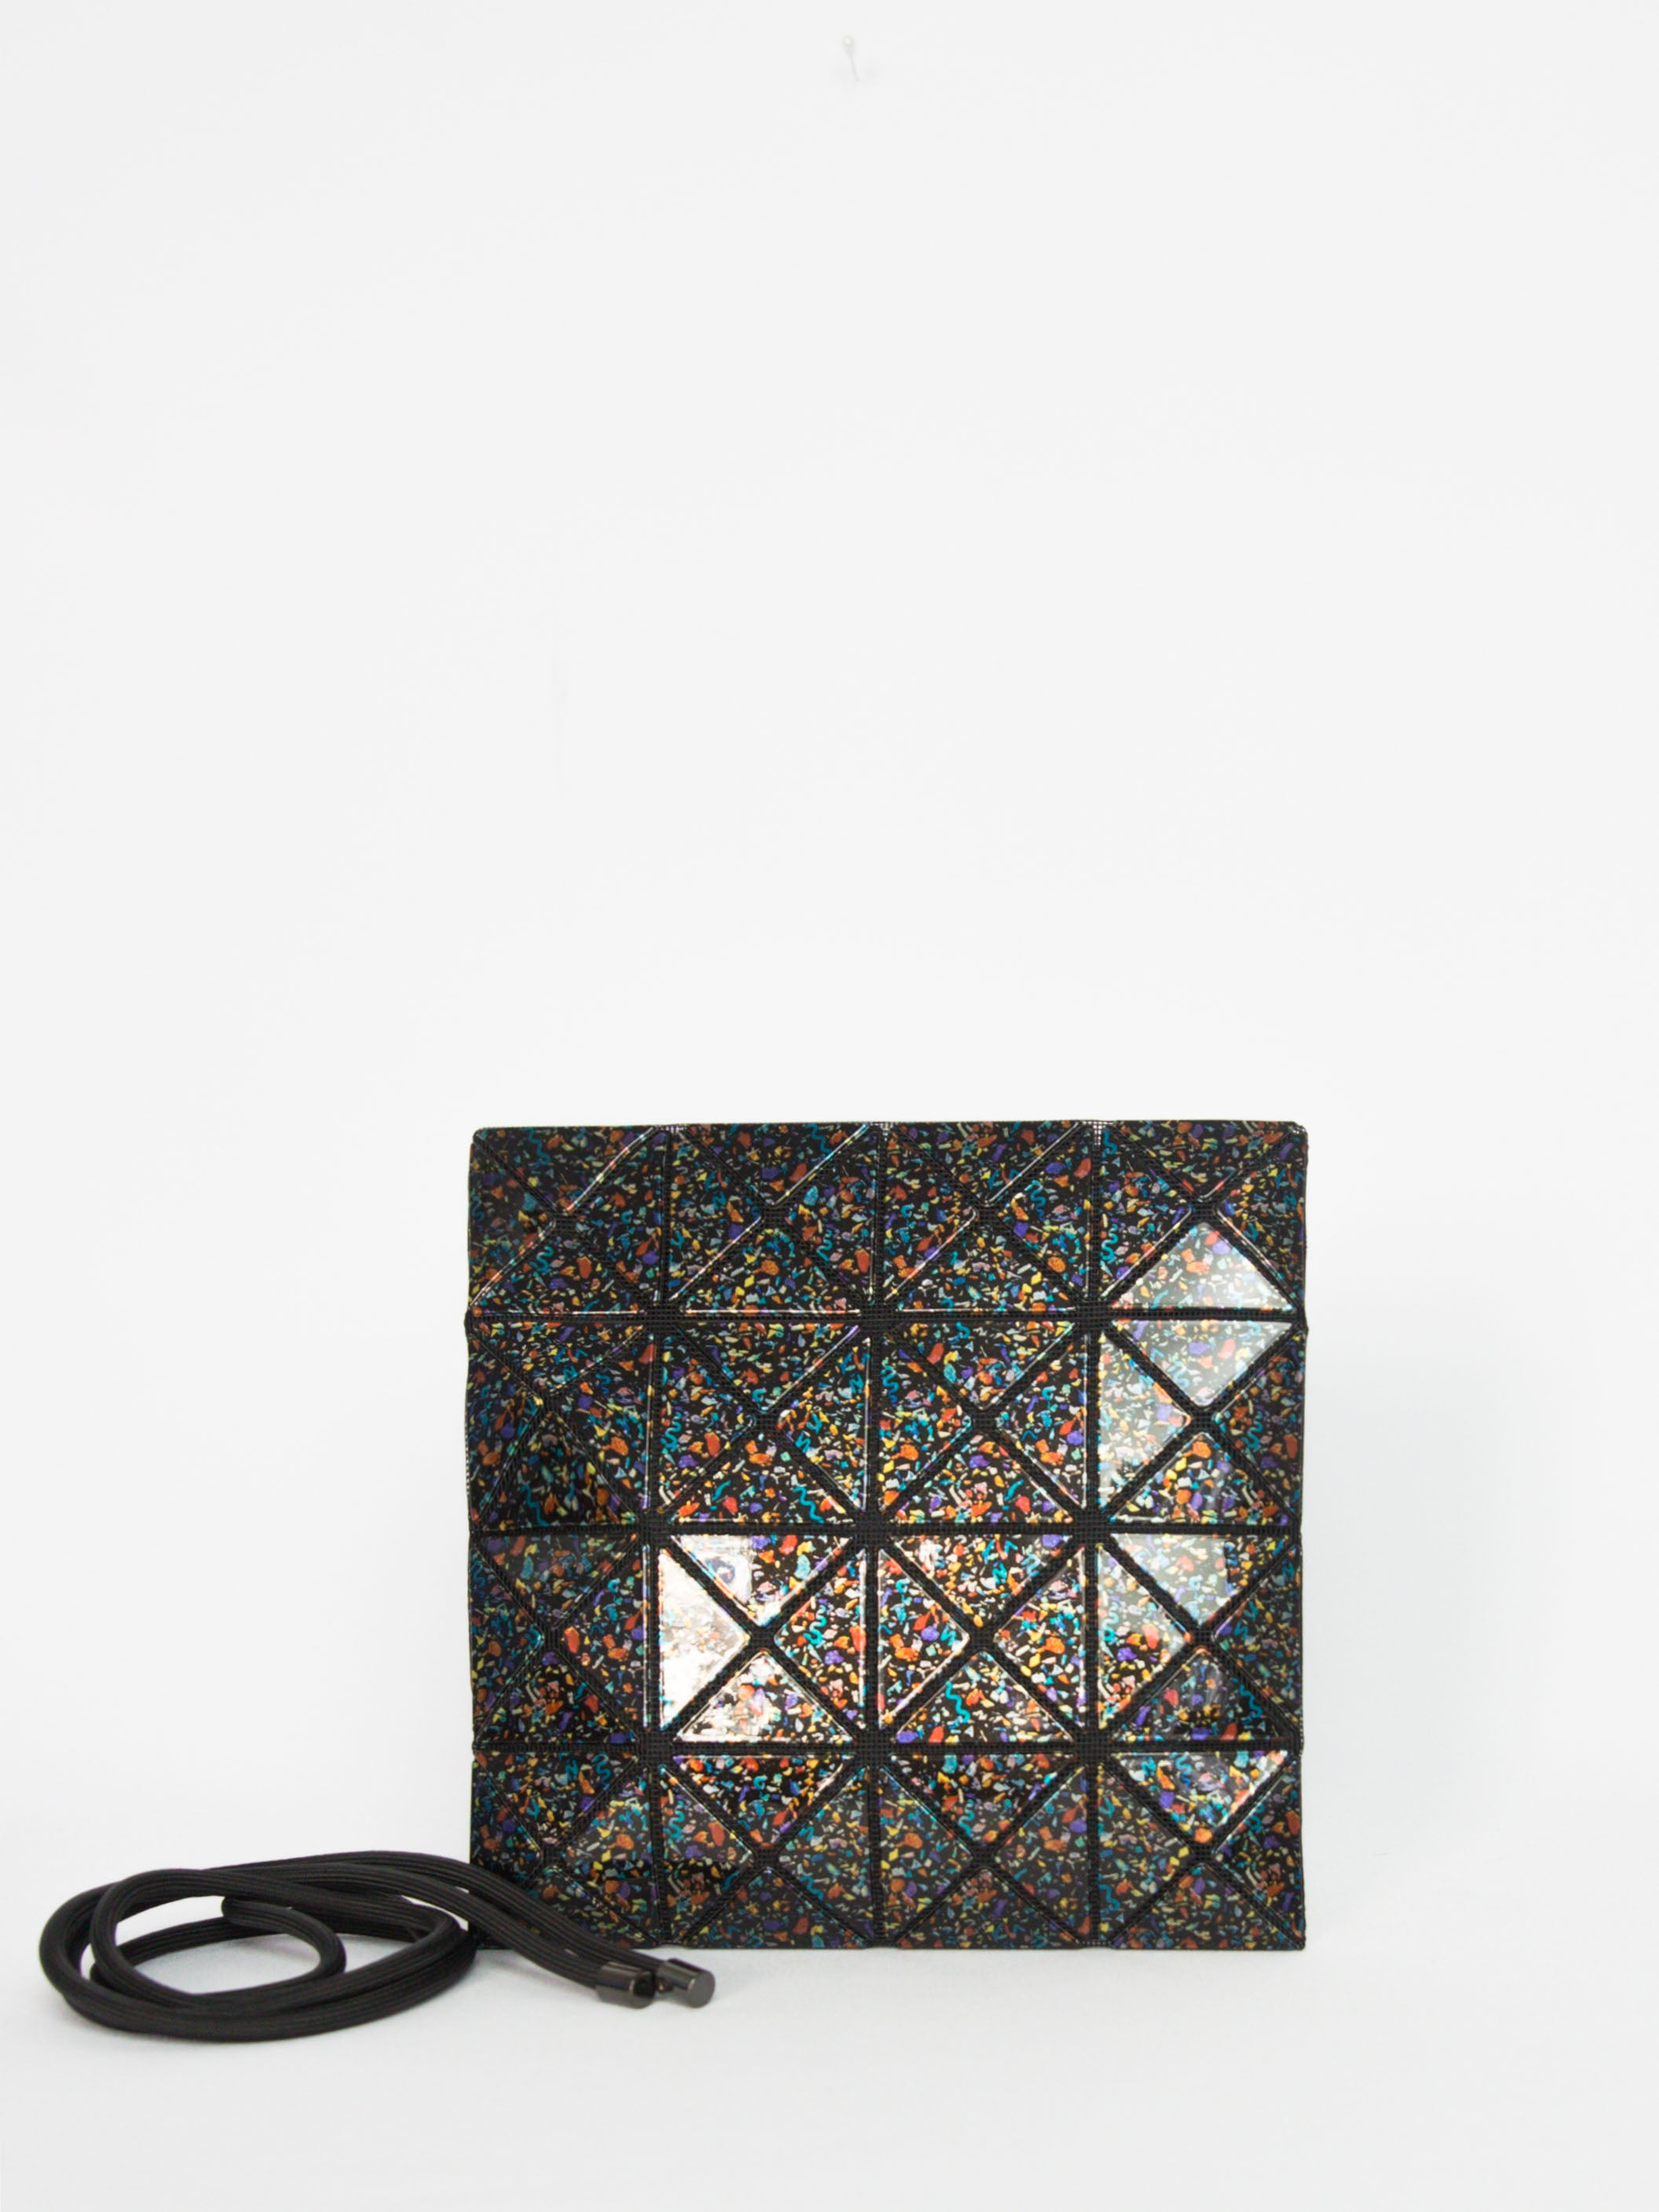 Stone Crossbody Bag - Black Mix